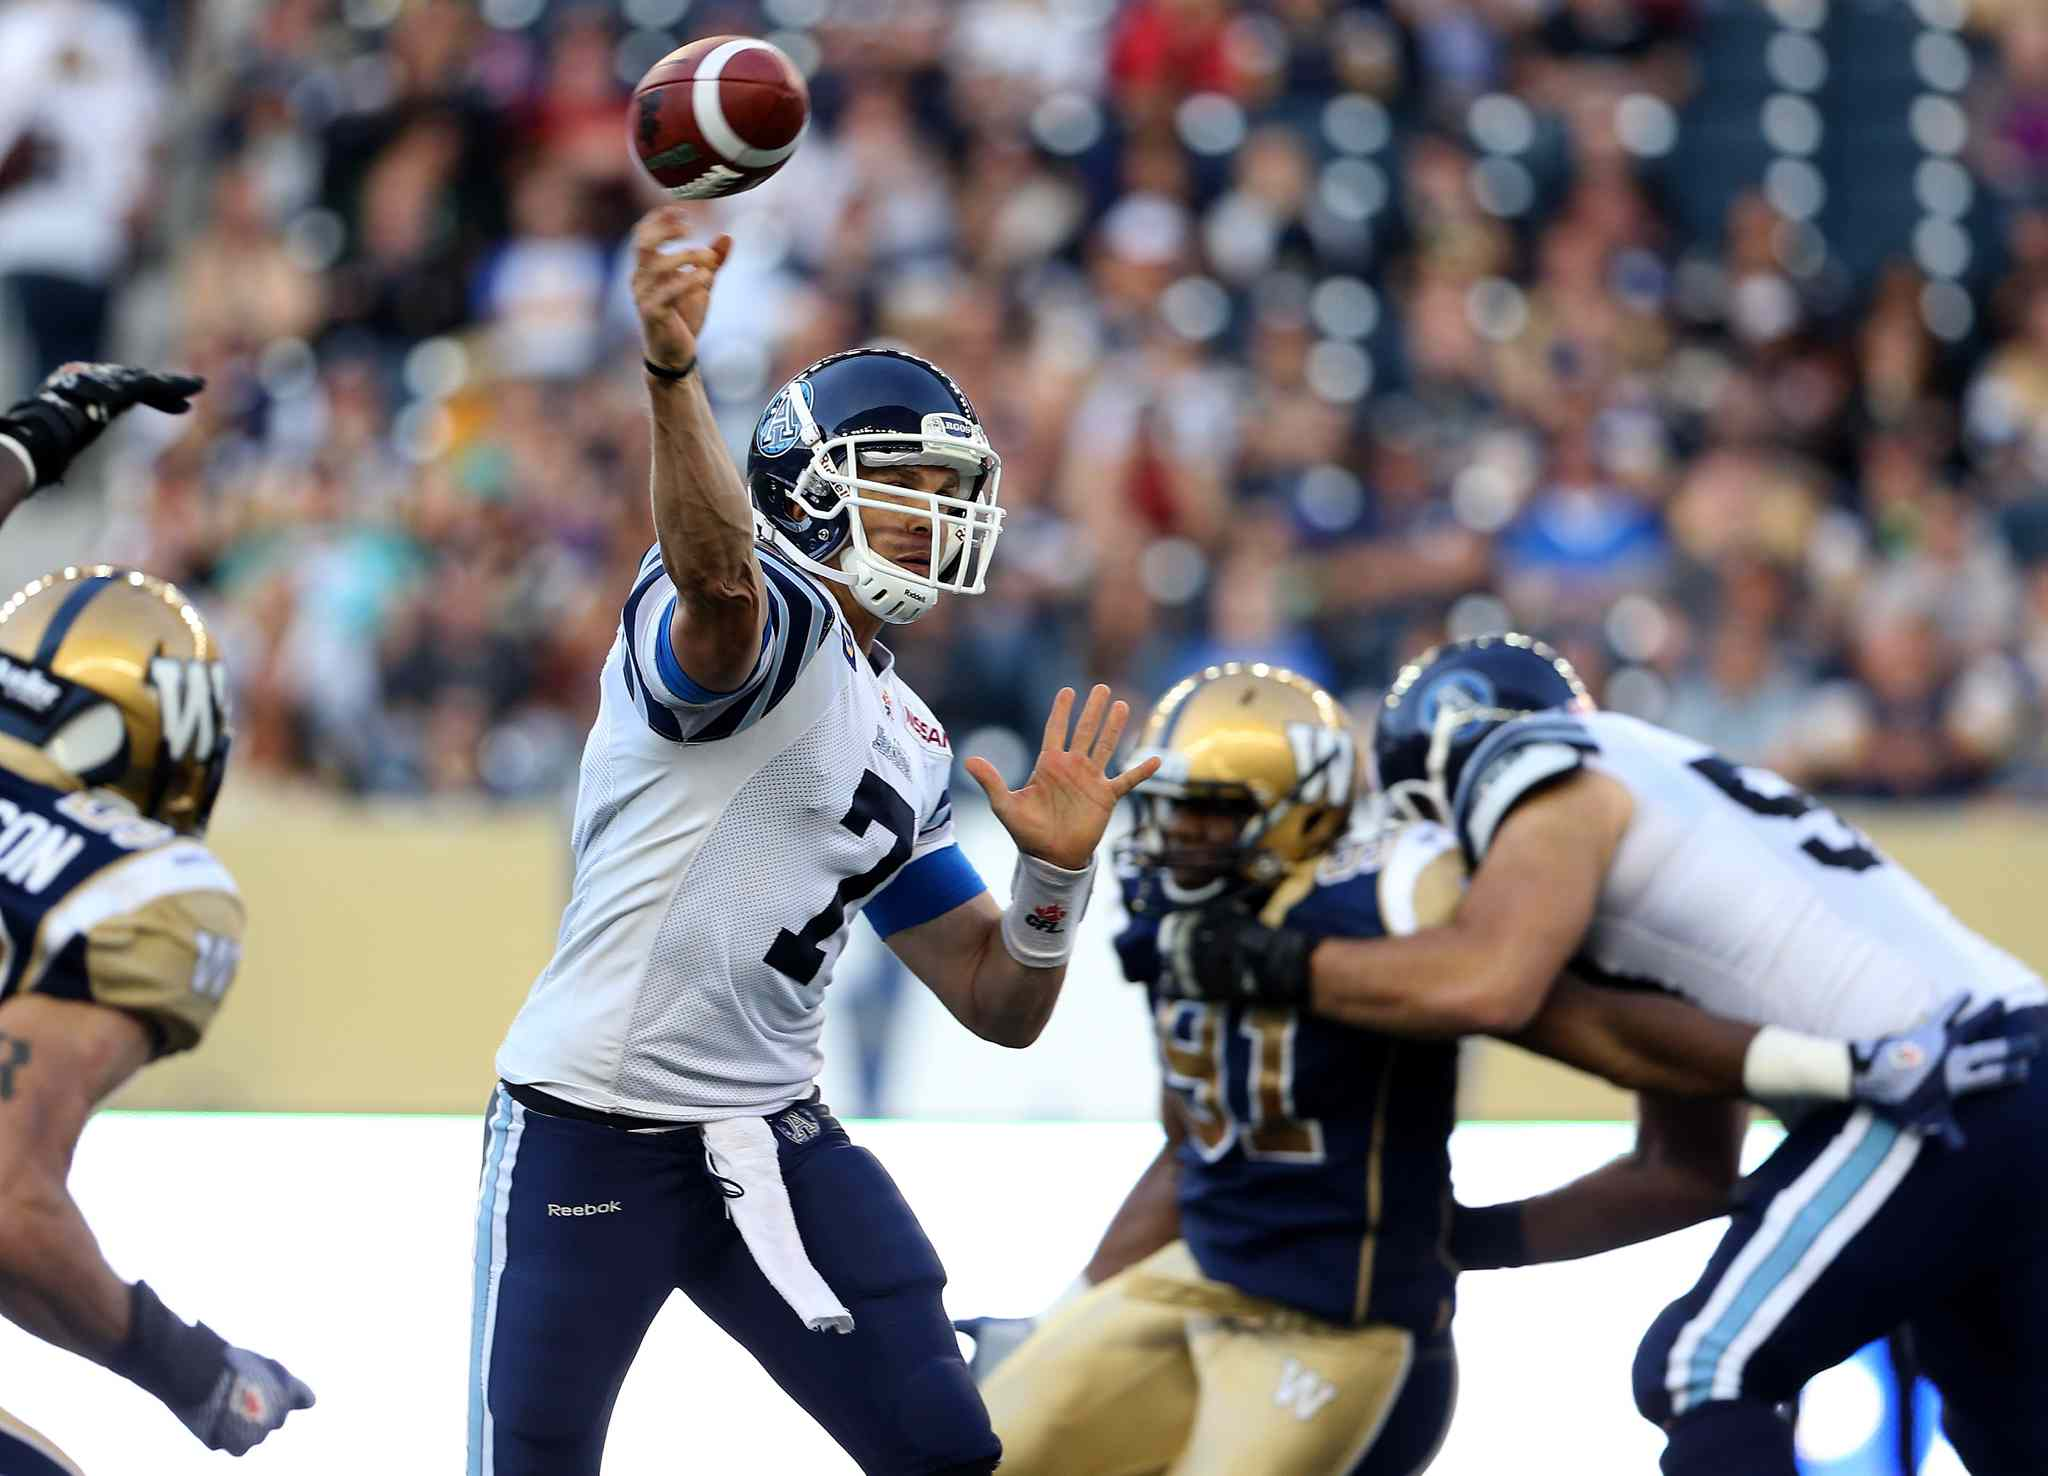 Argos quarterback Trevor Harris fires a pass during the first half.